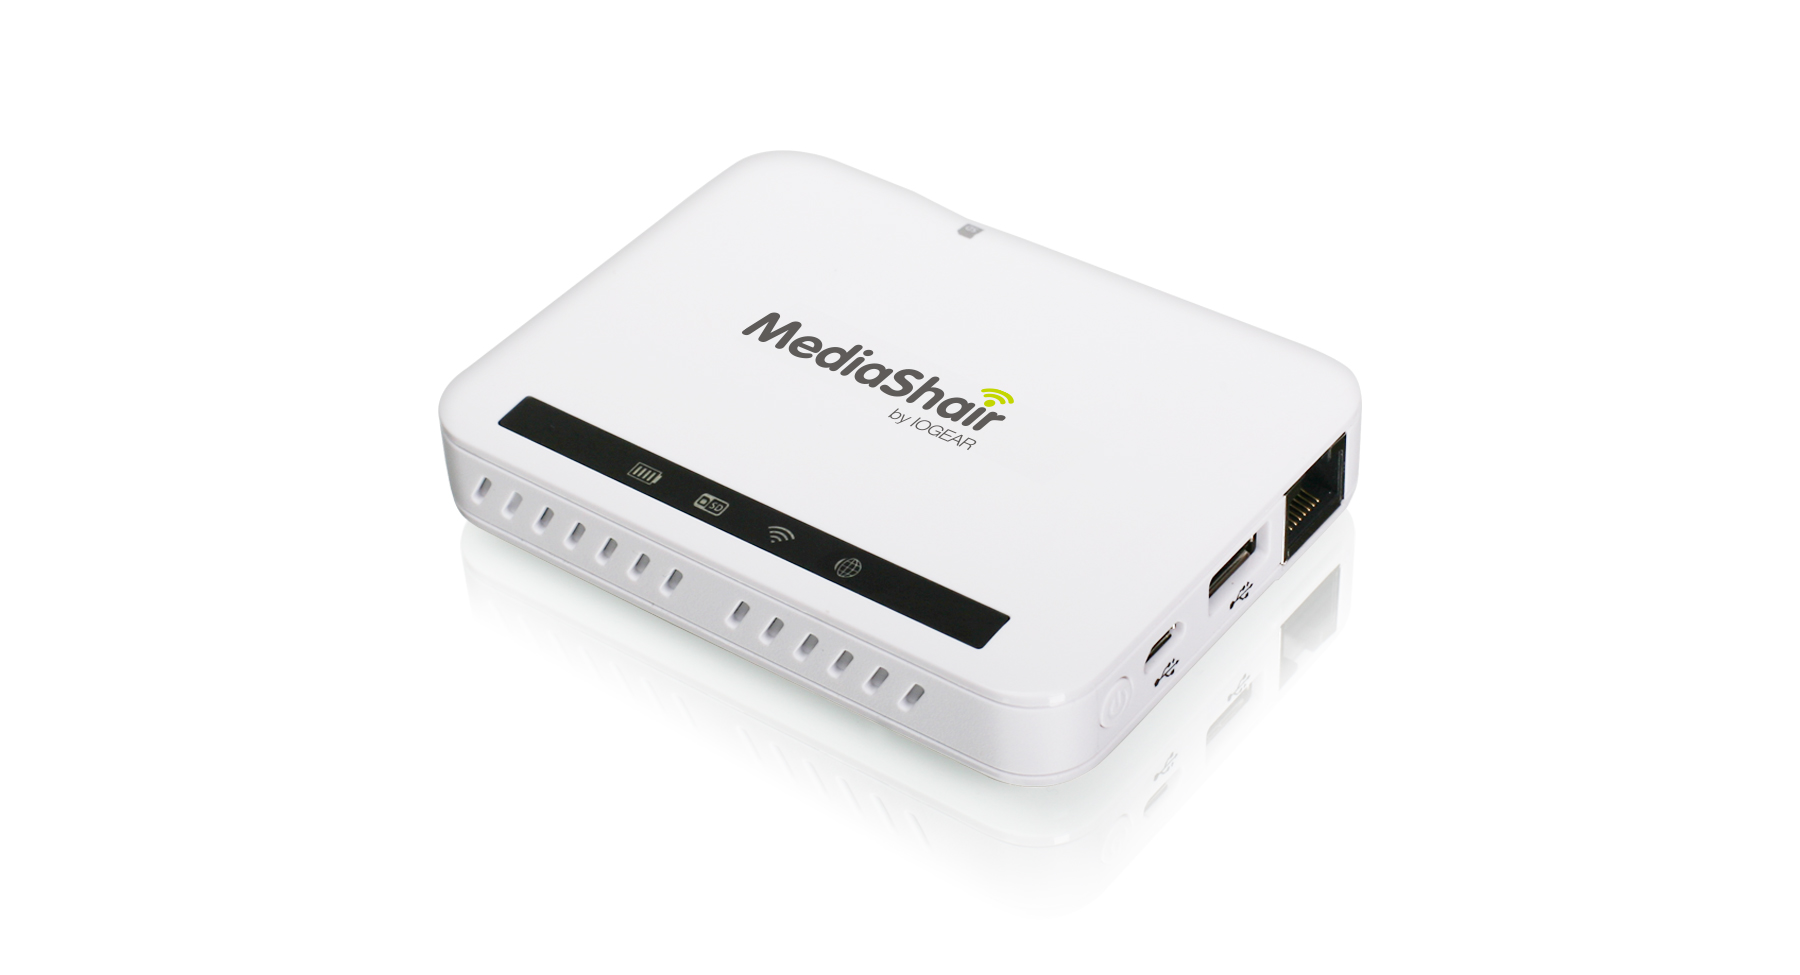 IOGEAR USB 2.0 UNIVERSAL MEDIA HUB WINDOWS 7 DRIVERS DOWNLOAD (2019)